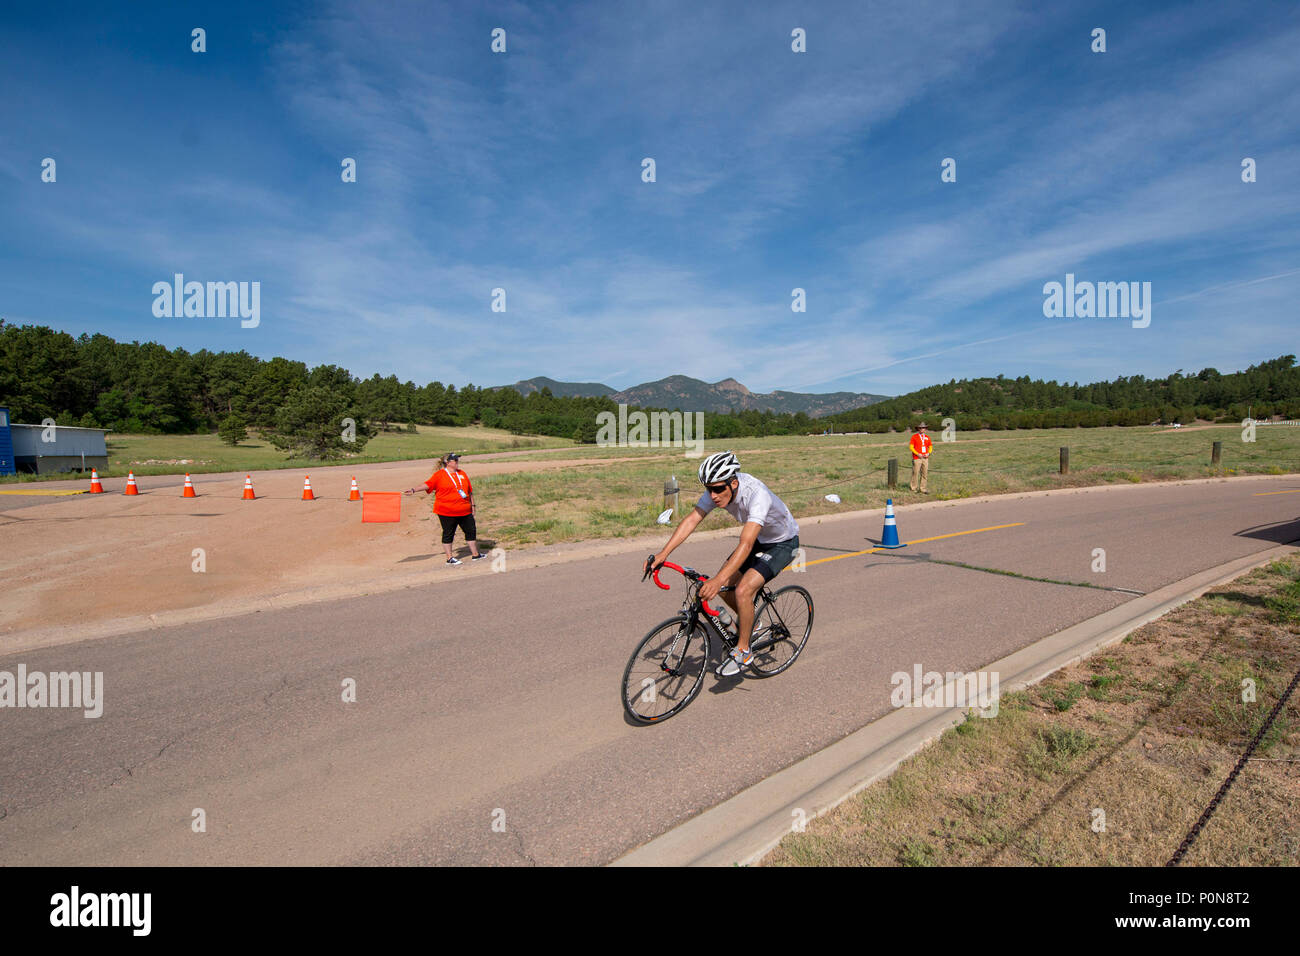 SOCOM Spc. Vairon Caicedo Ocampo competes in cycling during the 2018 DoD Warrior Games at the U.S. Air Force Academy in Colorado Springs on June 6, 2018.  The Warrior Games are an annual event, established in 2010, to introduce wounded, ill and injured service members to adaptive sports as a way to enhance their recovery and rehabilitation.     (DoD Photo by Roger L. Wollenberg) Stock Photo